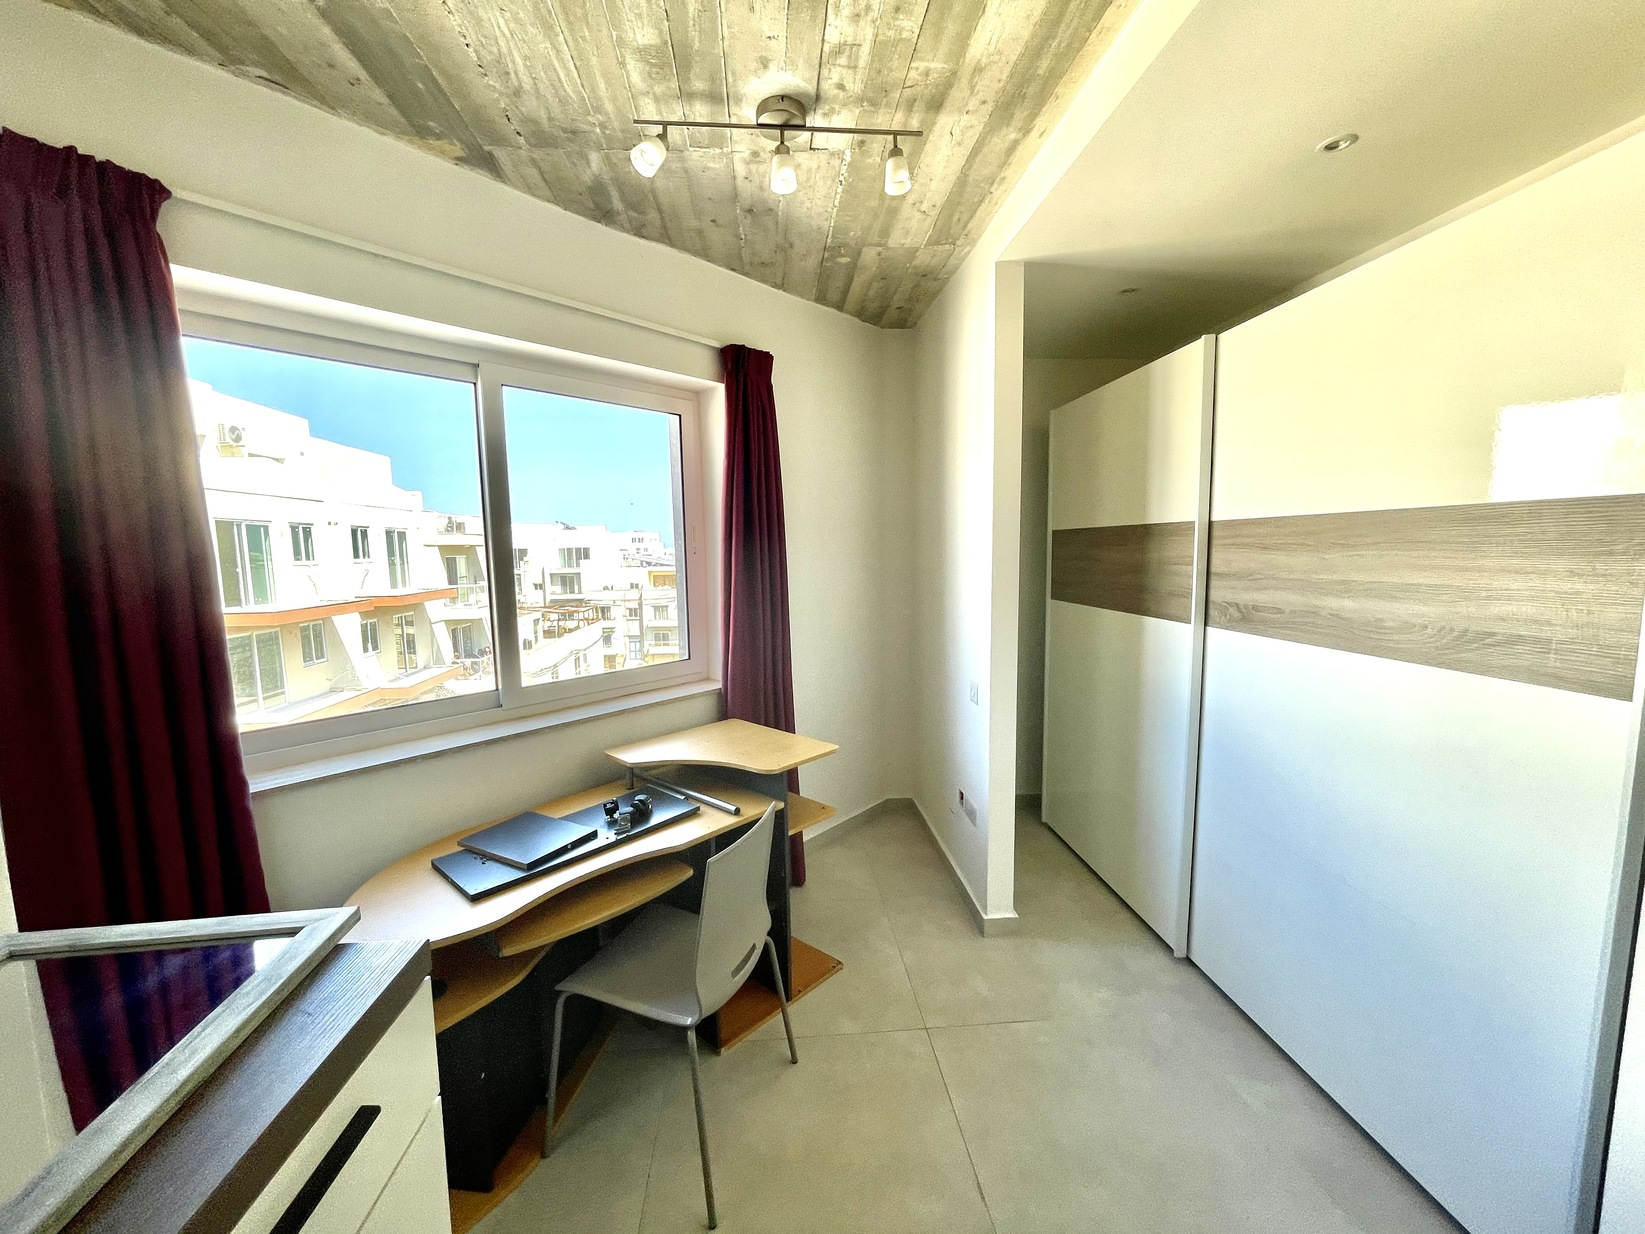 4 bed Apartment For Rent in Swieqi, Swieqi - thumb 6